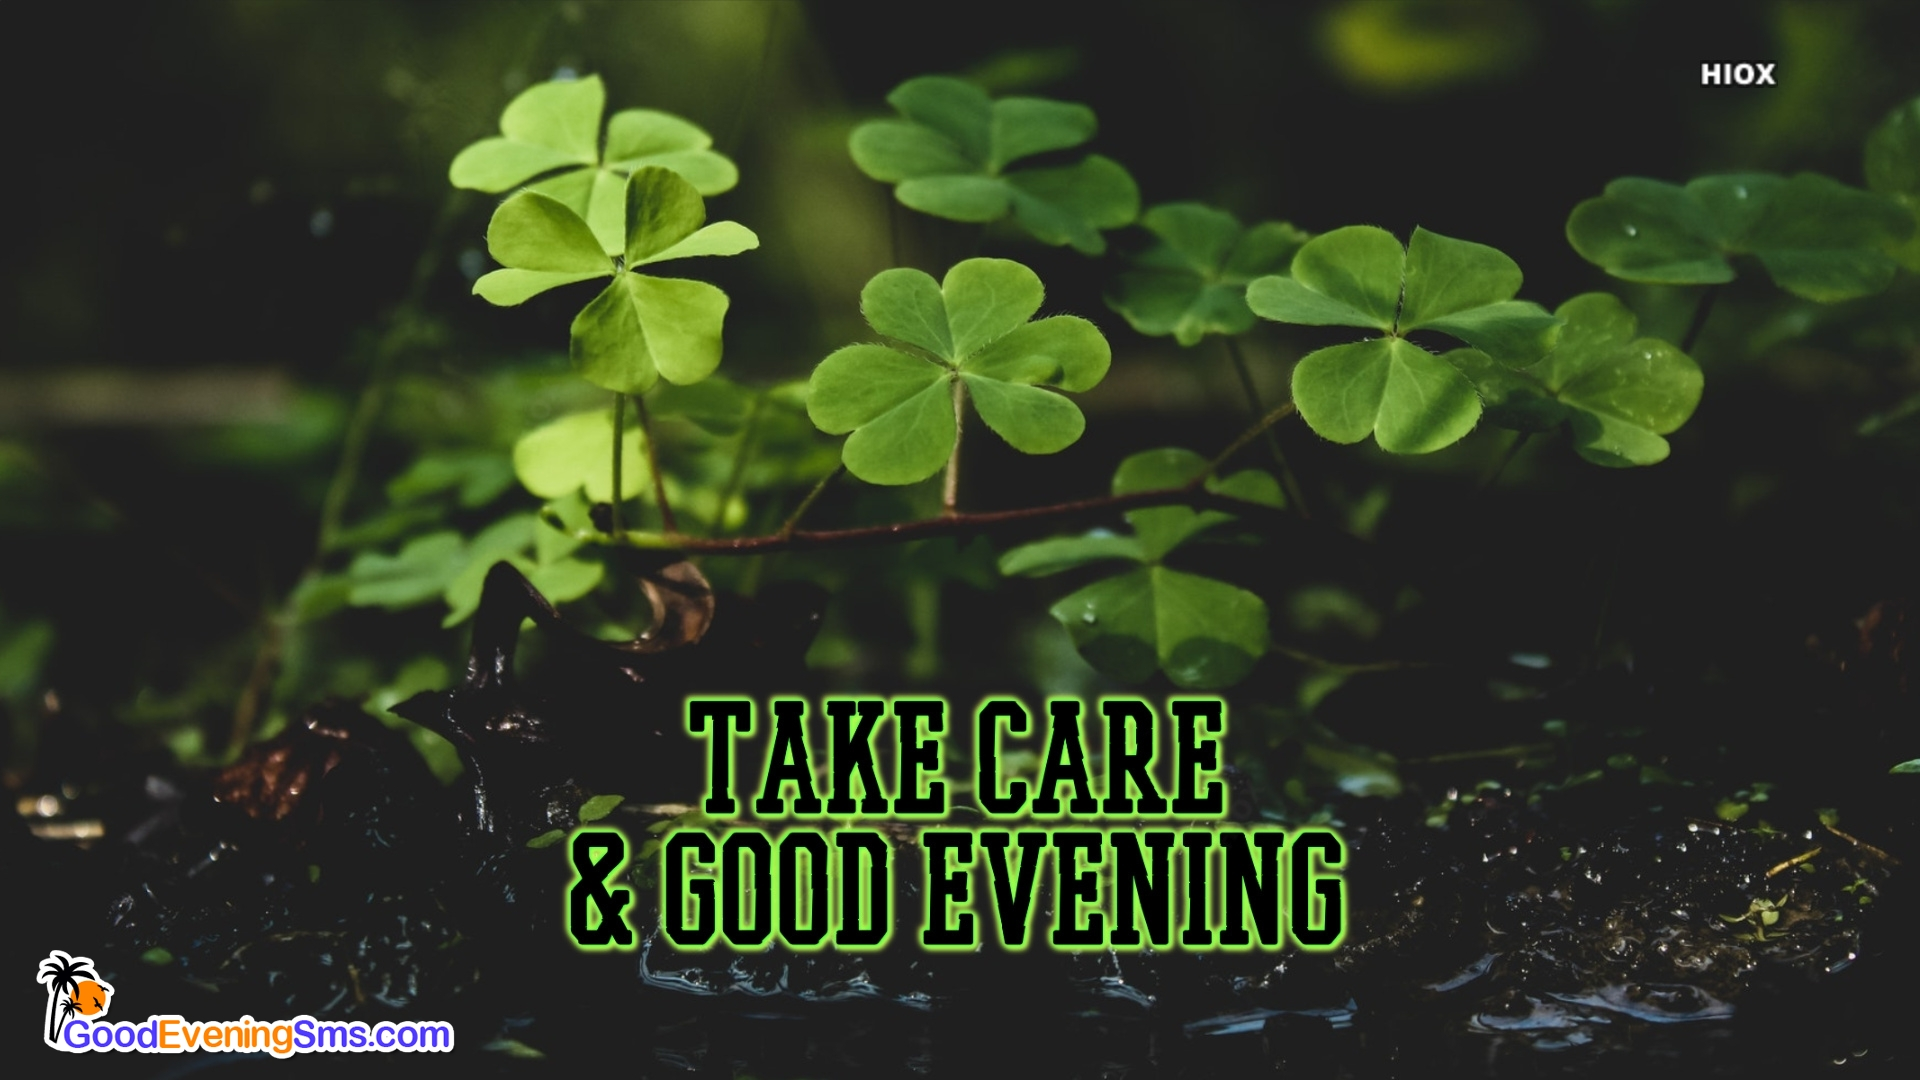 Take Care & Good Evening